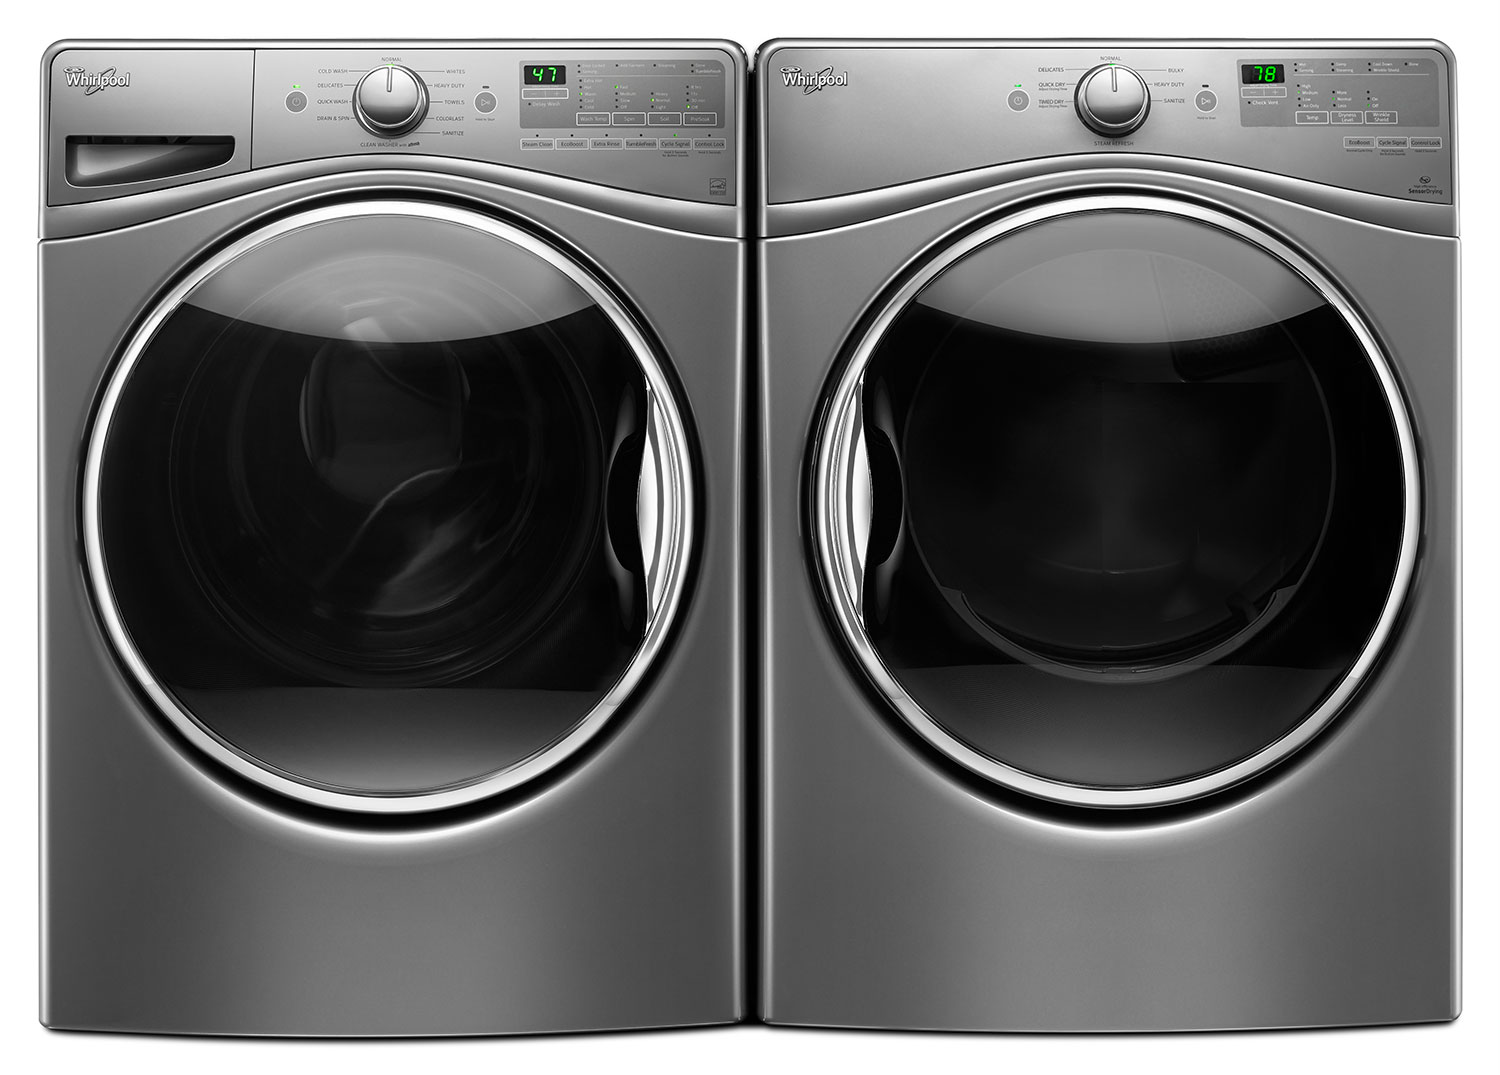 Whirlpool 5.2 Cu. Ft. Front-Load Washer and 8.5 Cu. Ft. Gas Steam Dryer – Stainless Steel